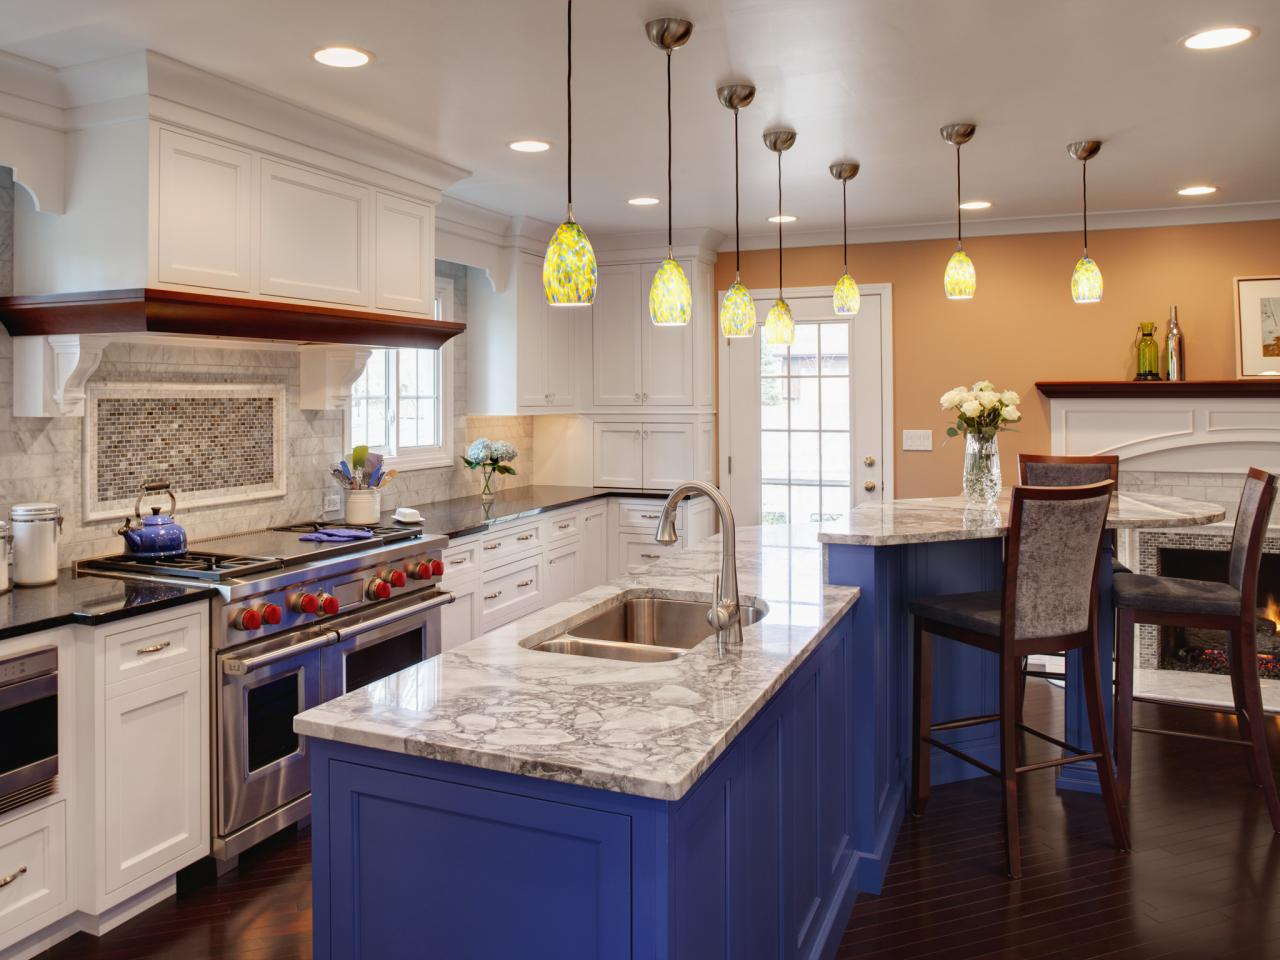 White Painted Kitchen Cabinets and Blue Island inside Wide Kitchen with  Wooden Stools and Grey Backsplash